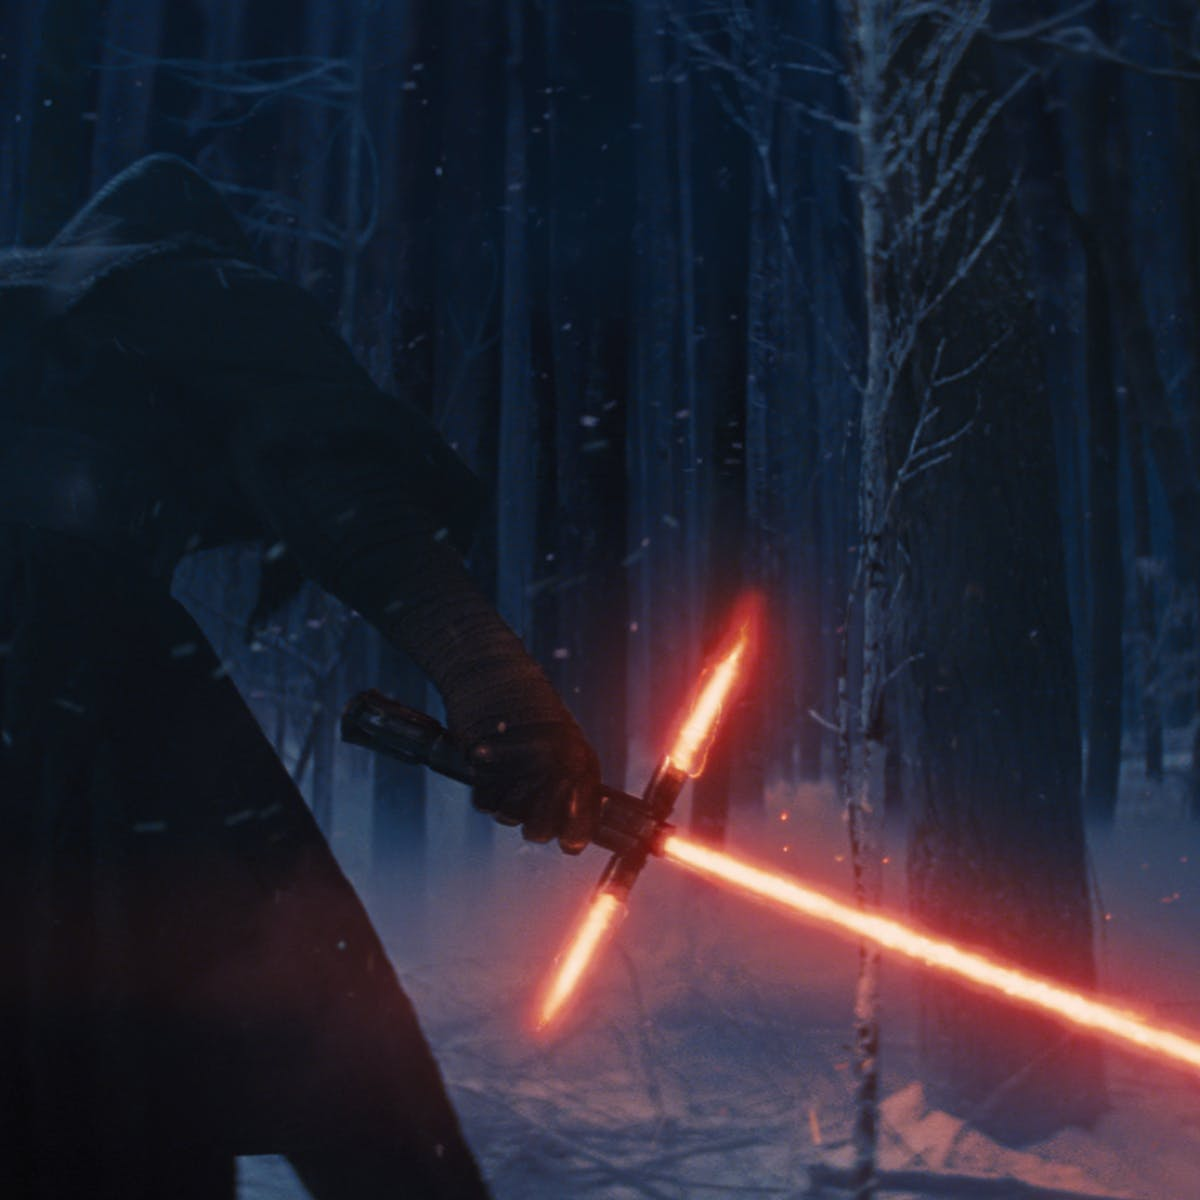 Star Wars offers enduring themes that appeal to our deepest